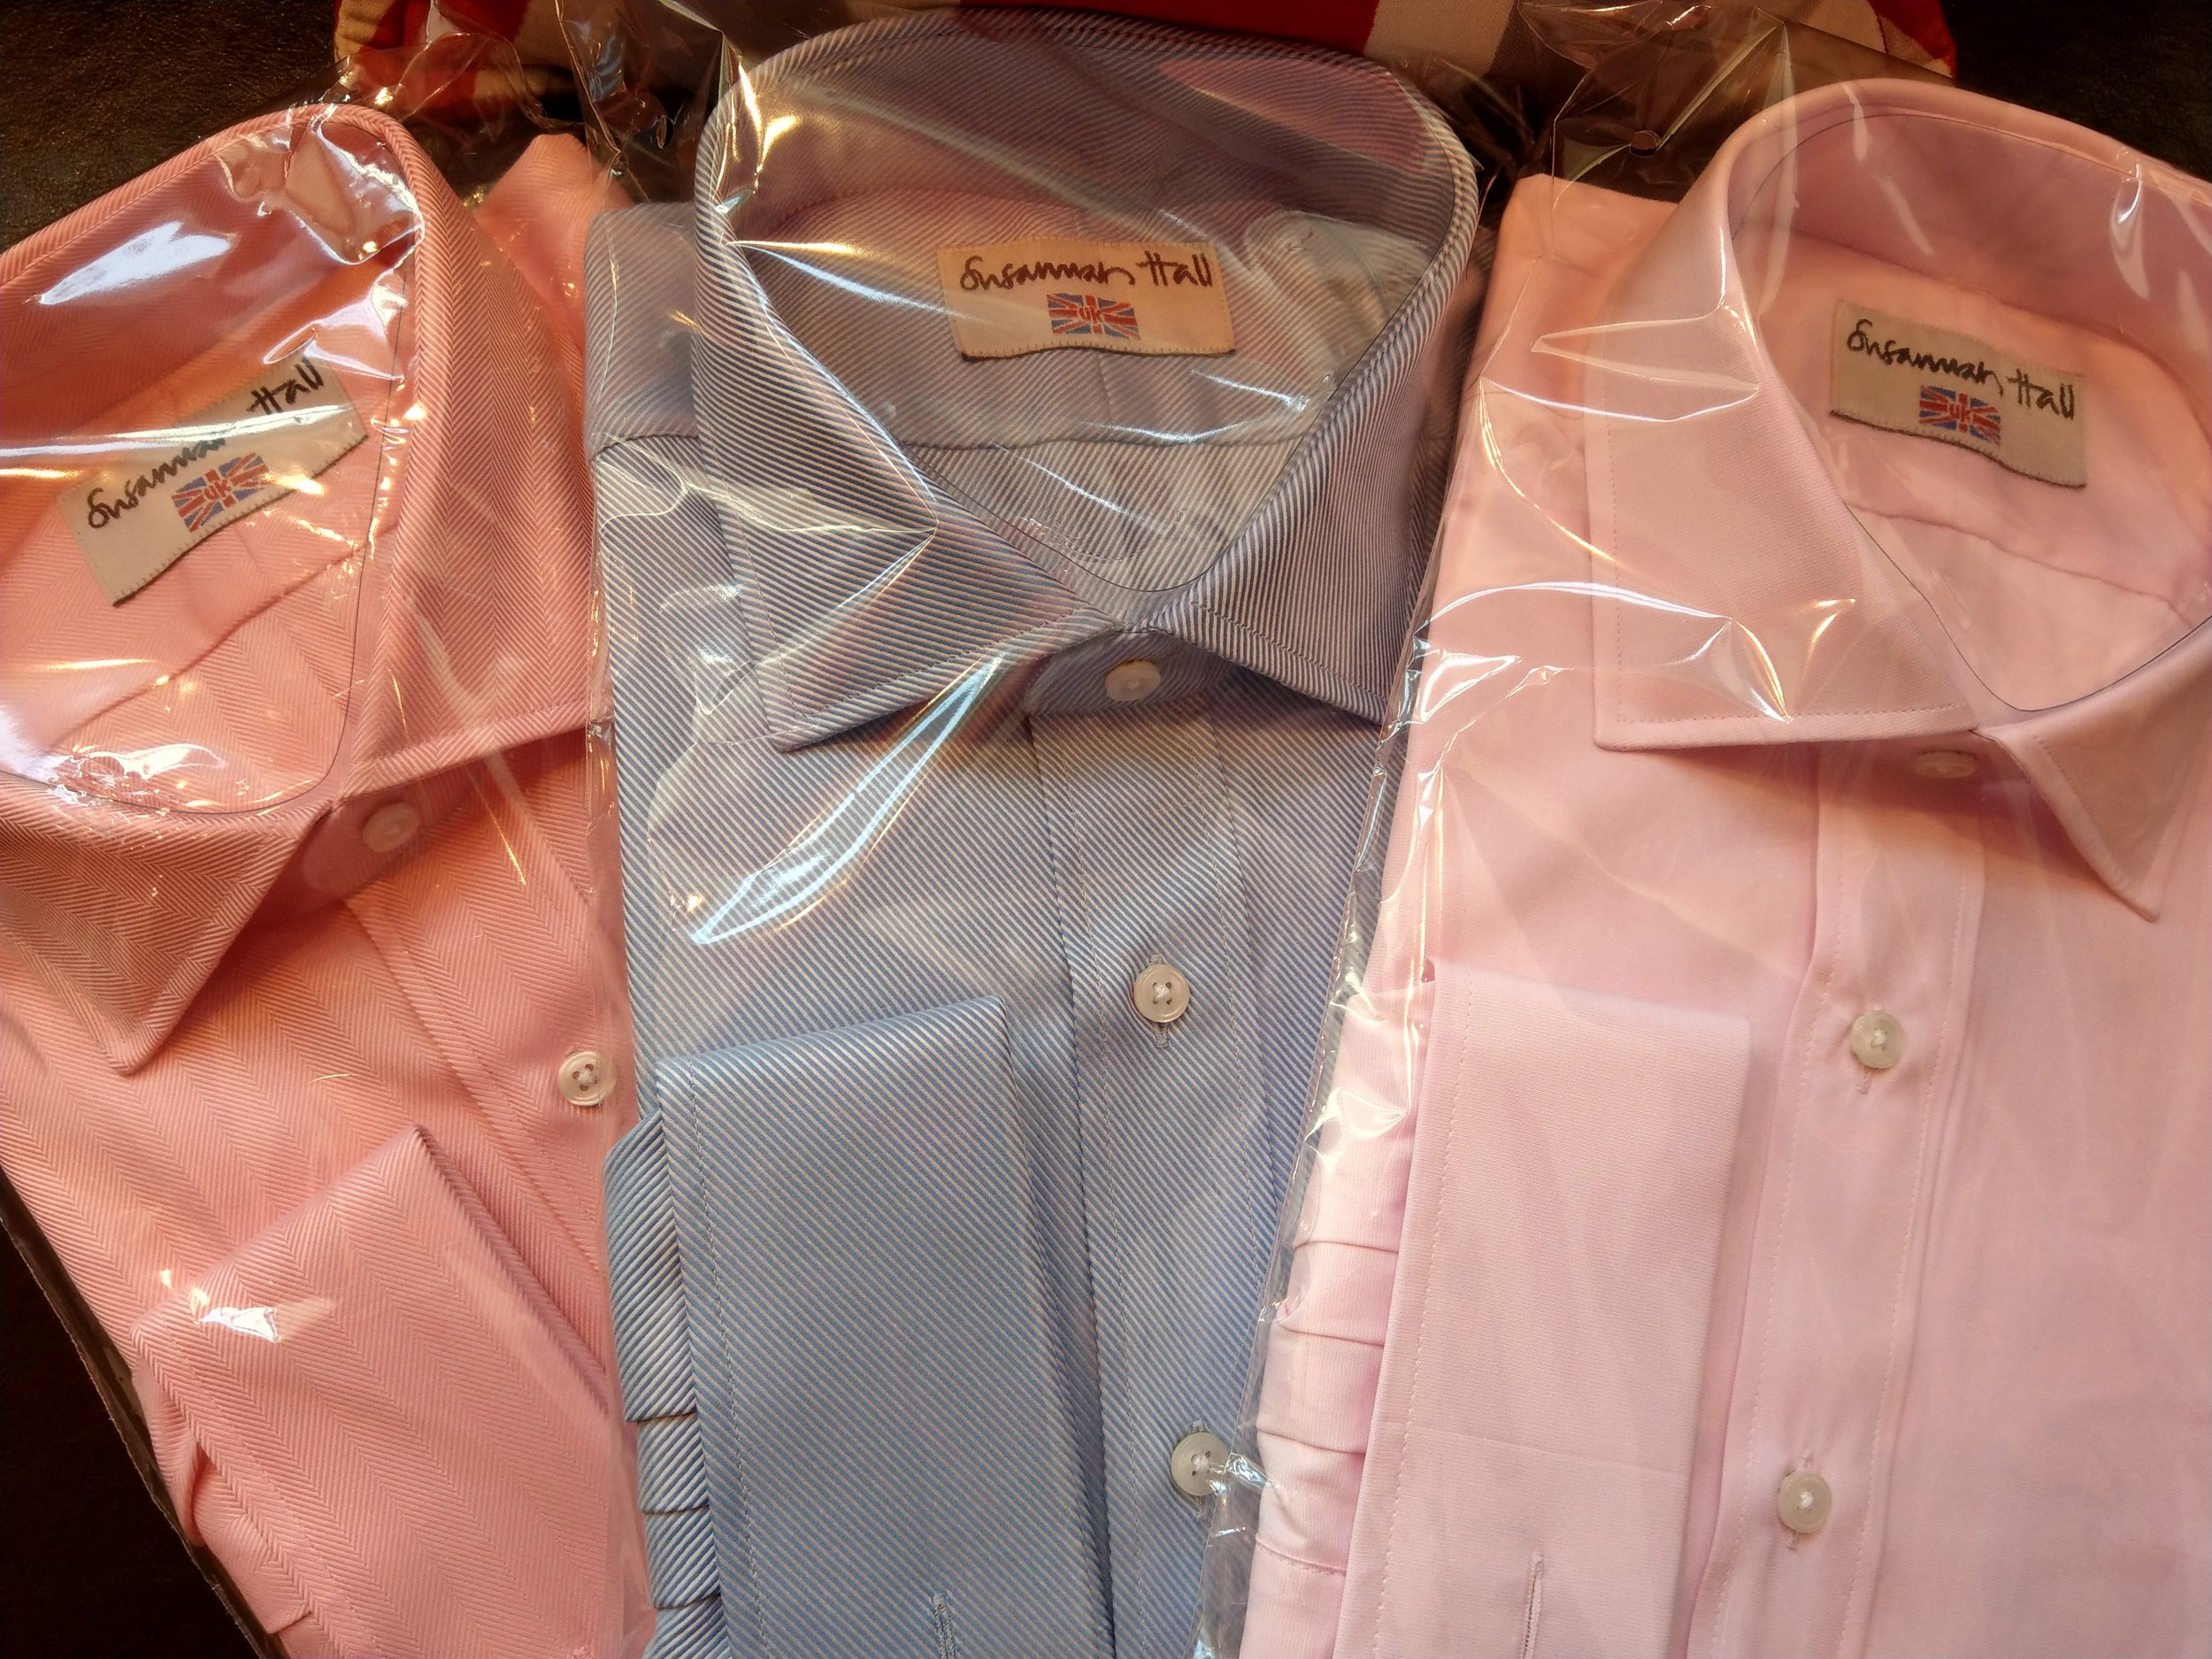 blue-pink-stripe-indigo-cotton-ringhart-fabric-british-made-uk-bespoke-shirt-herringbone-susannah-hall.jpg